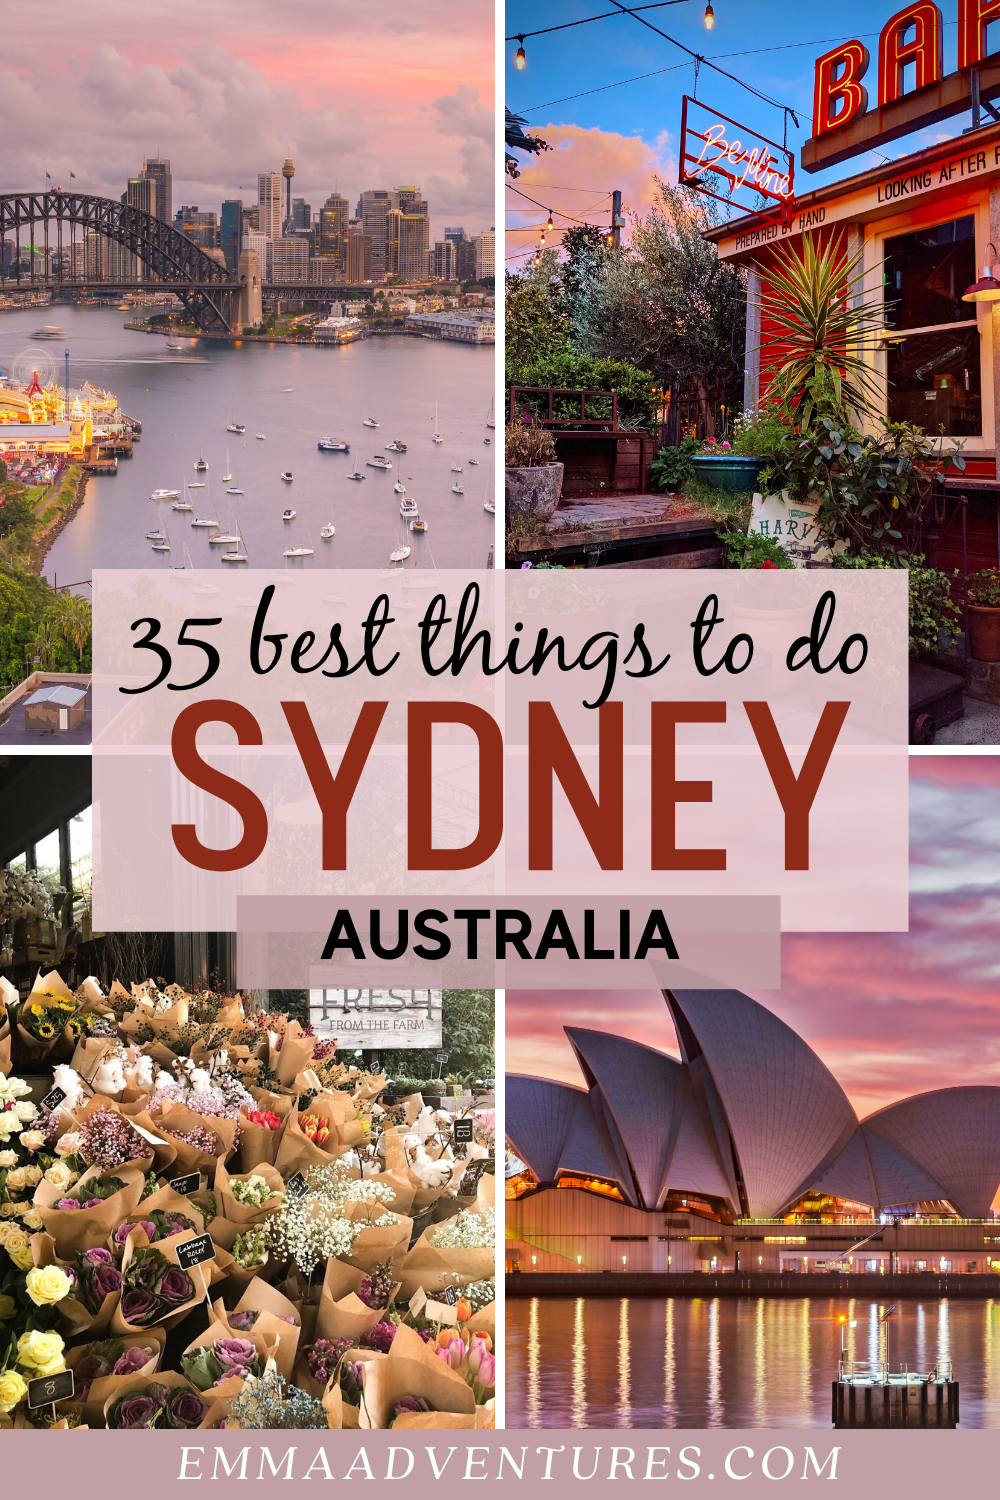 35 Of The Best Things To Do In Sydney Australia Sydney Travel Australia Travel Australian Travel